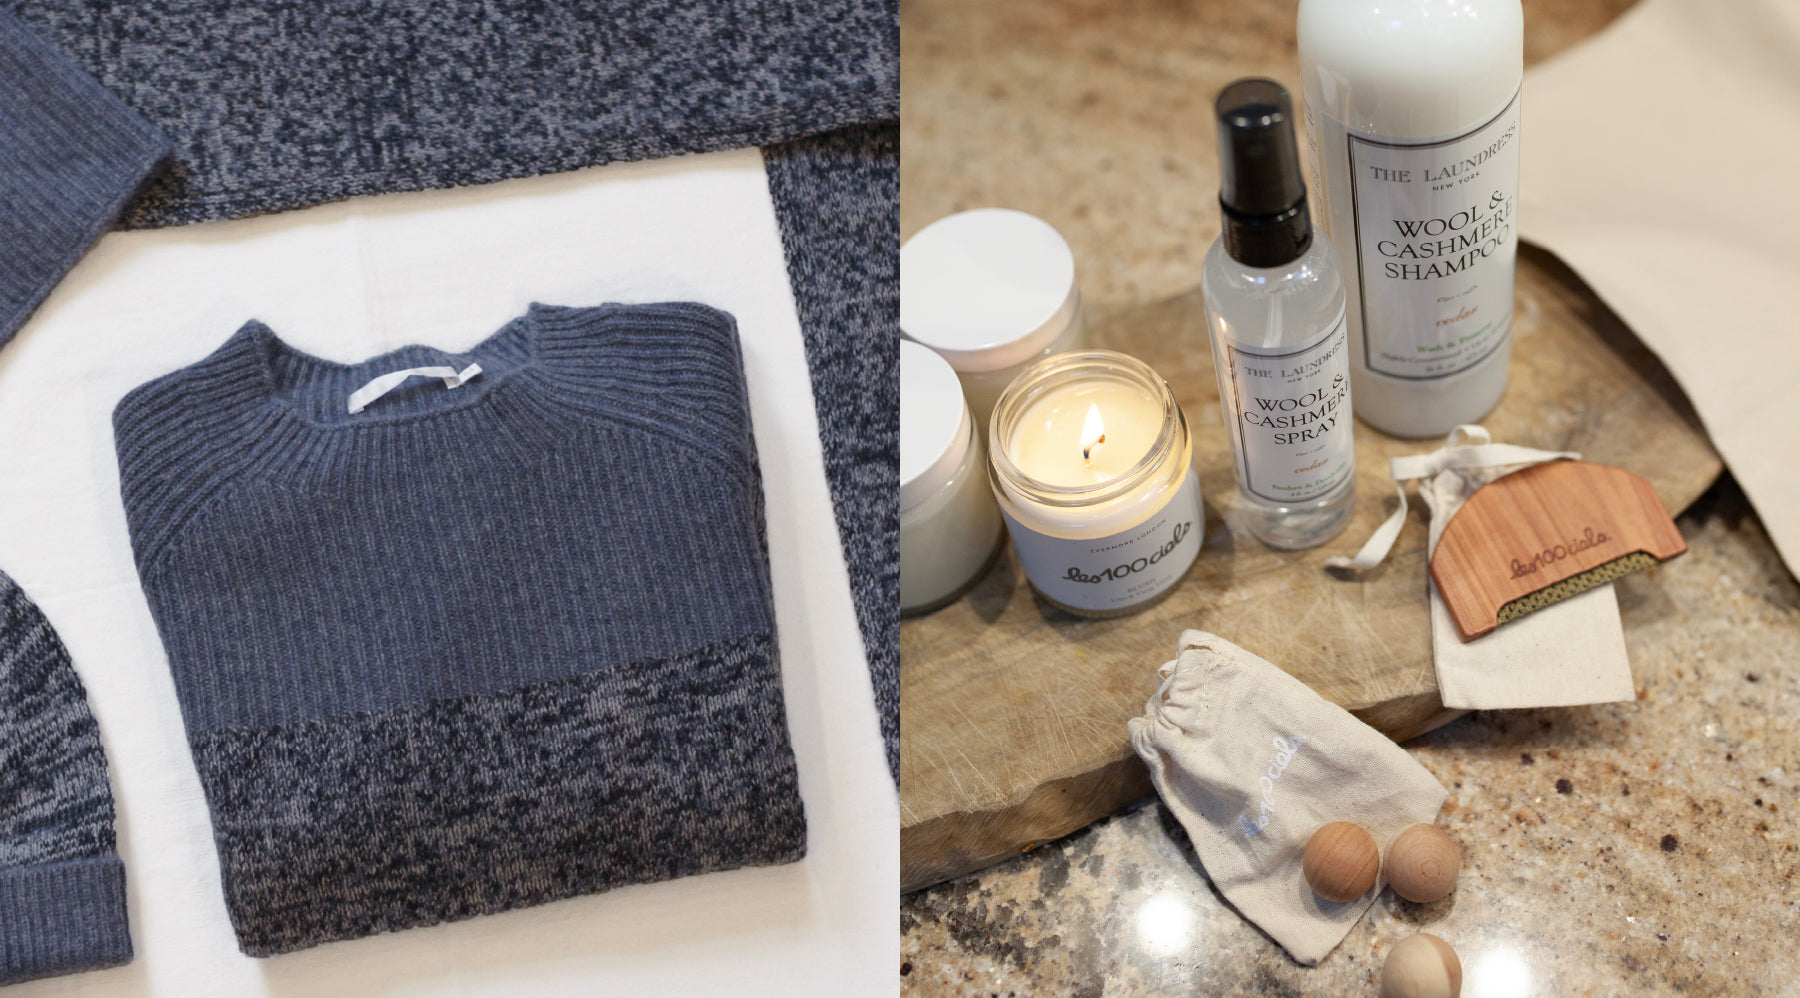 Les Cent Ciels flatlay of cashmere jumper and accessories, candles, cashmere comb and cedar balls accompanied by The Laundress Wool & Cashmere washing products